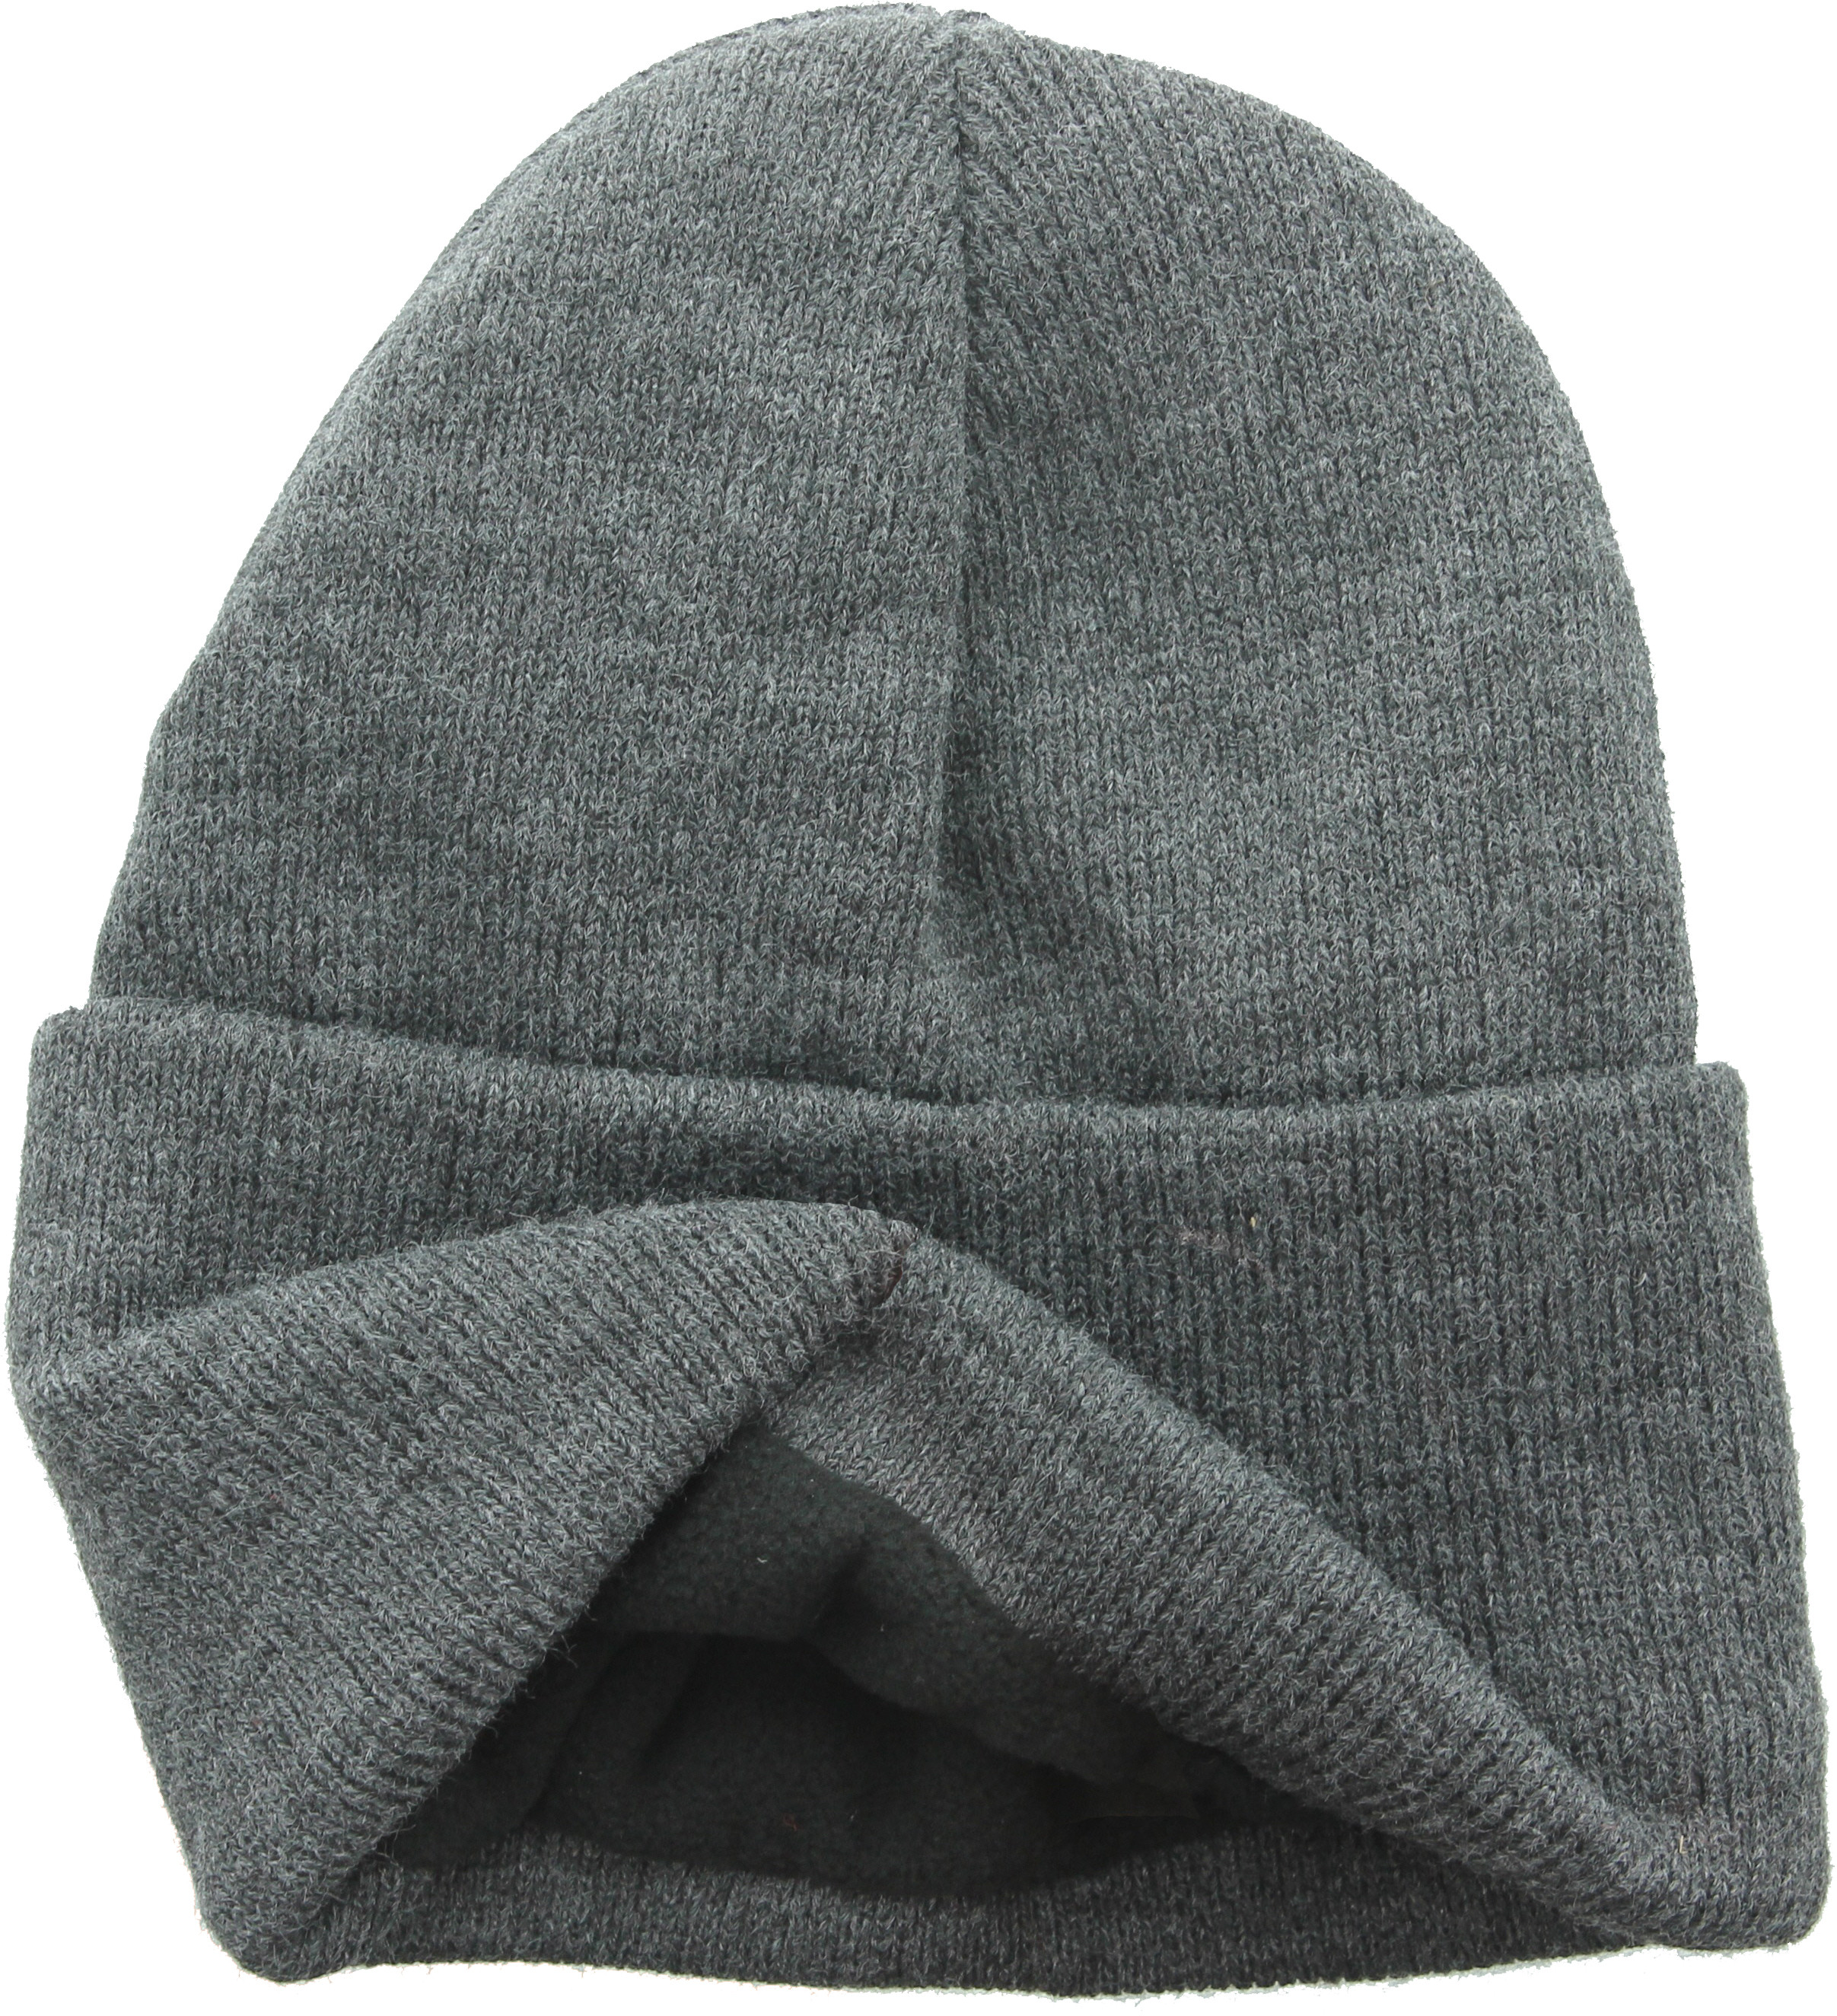 Big House Cold Weather Heavy Winter Fleece Lined Watch Cap USA Made 094217961